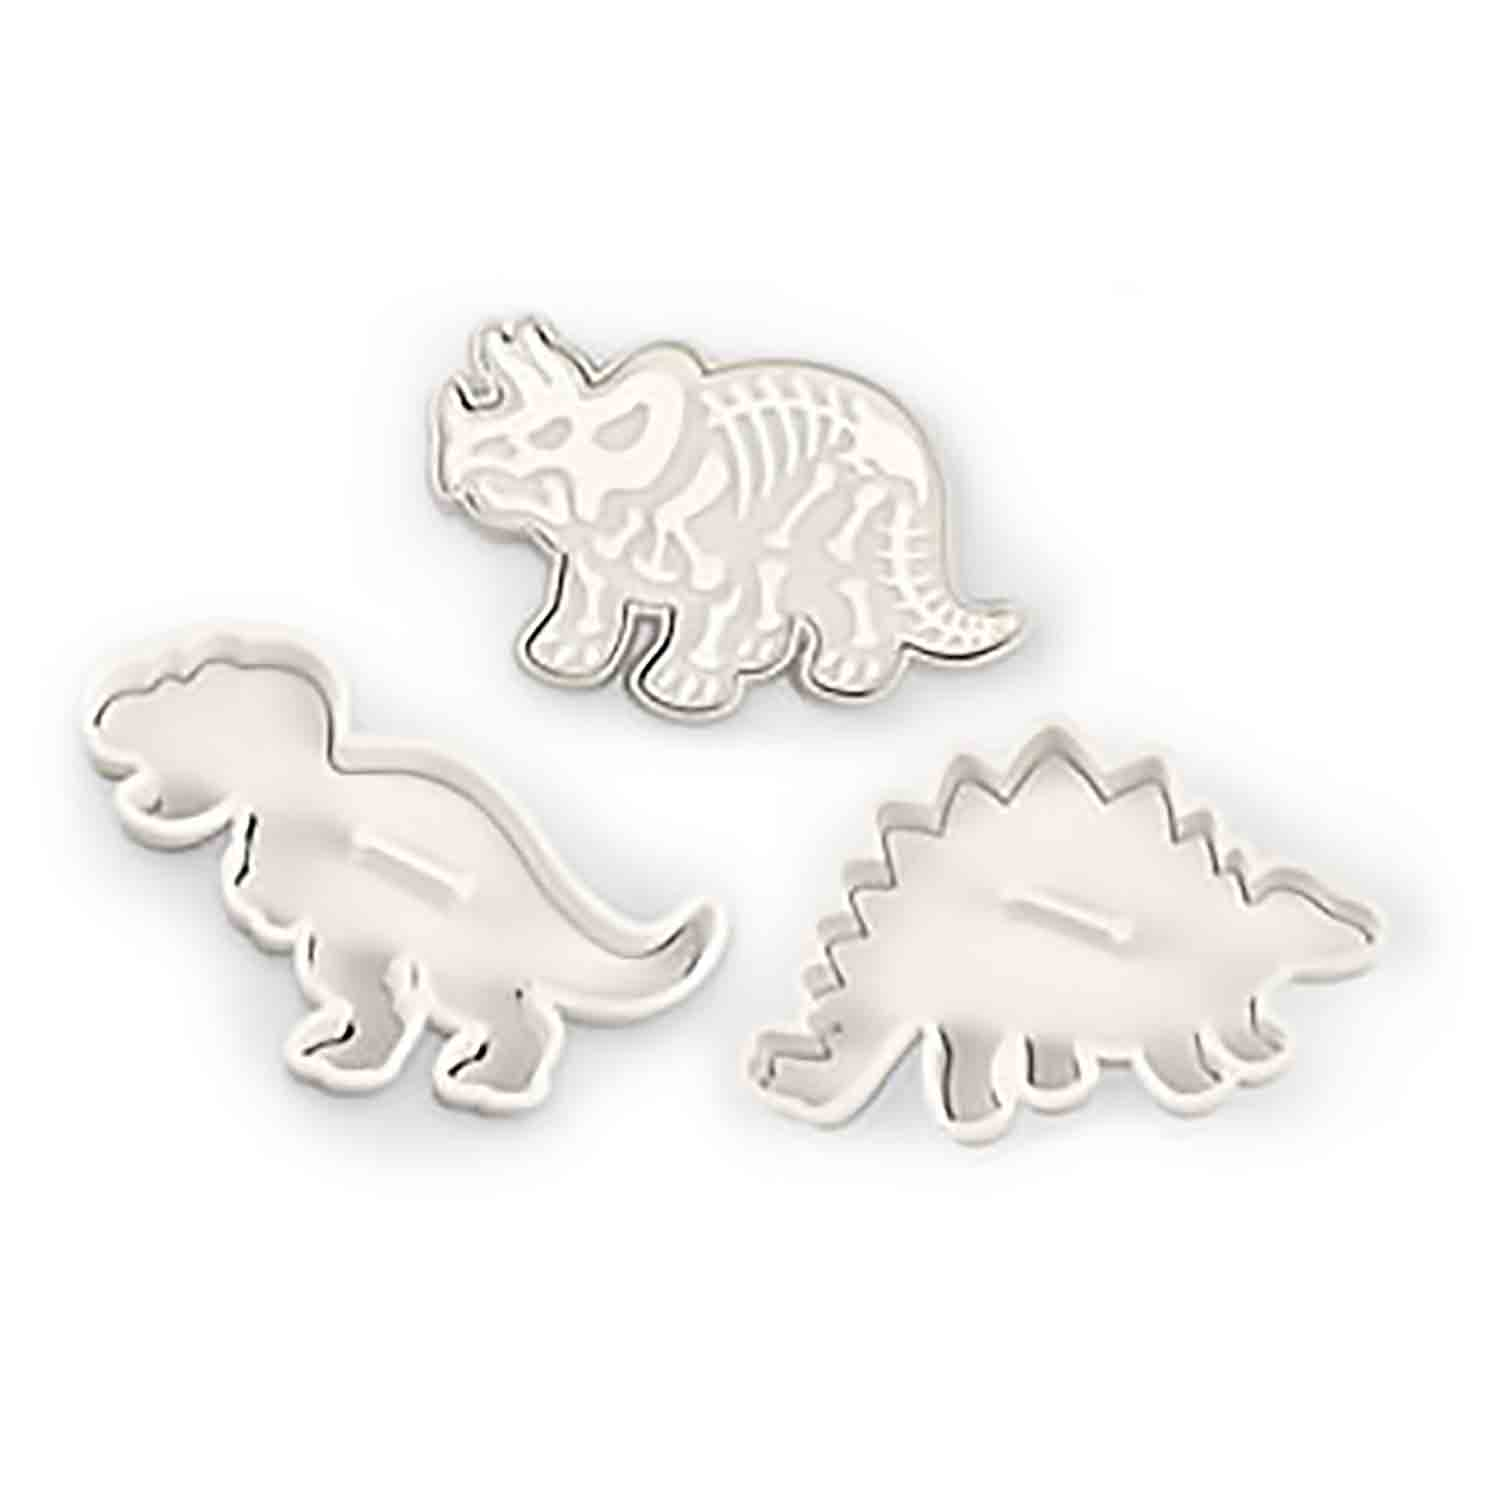 Dinosaur Fossil Cookie Cutter Stamp Set